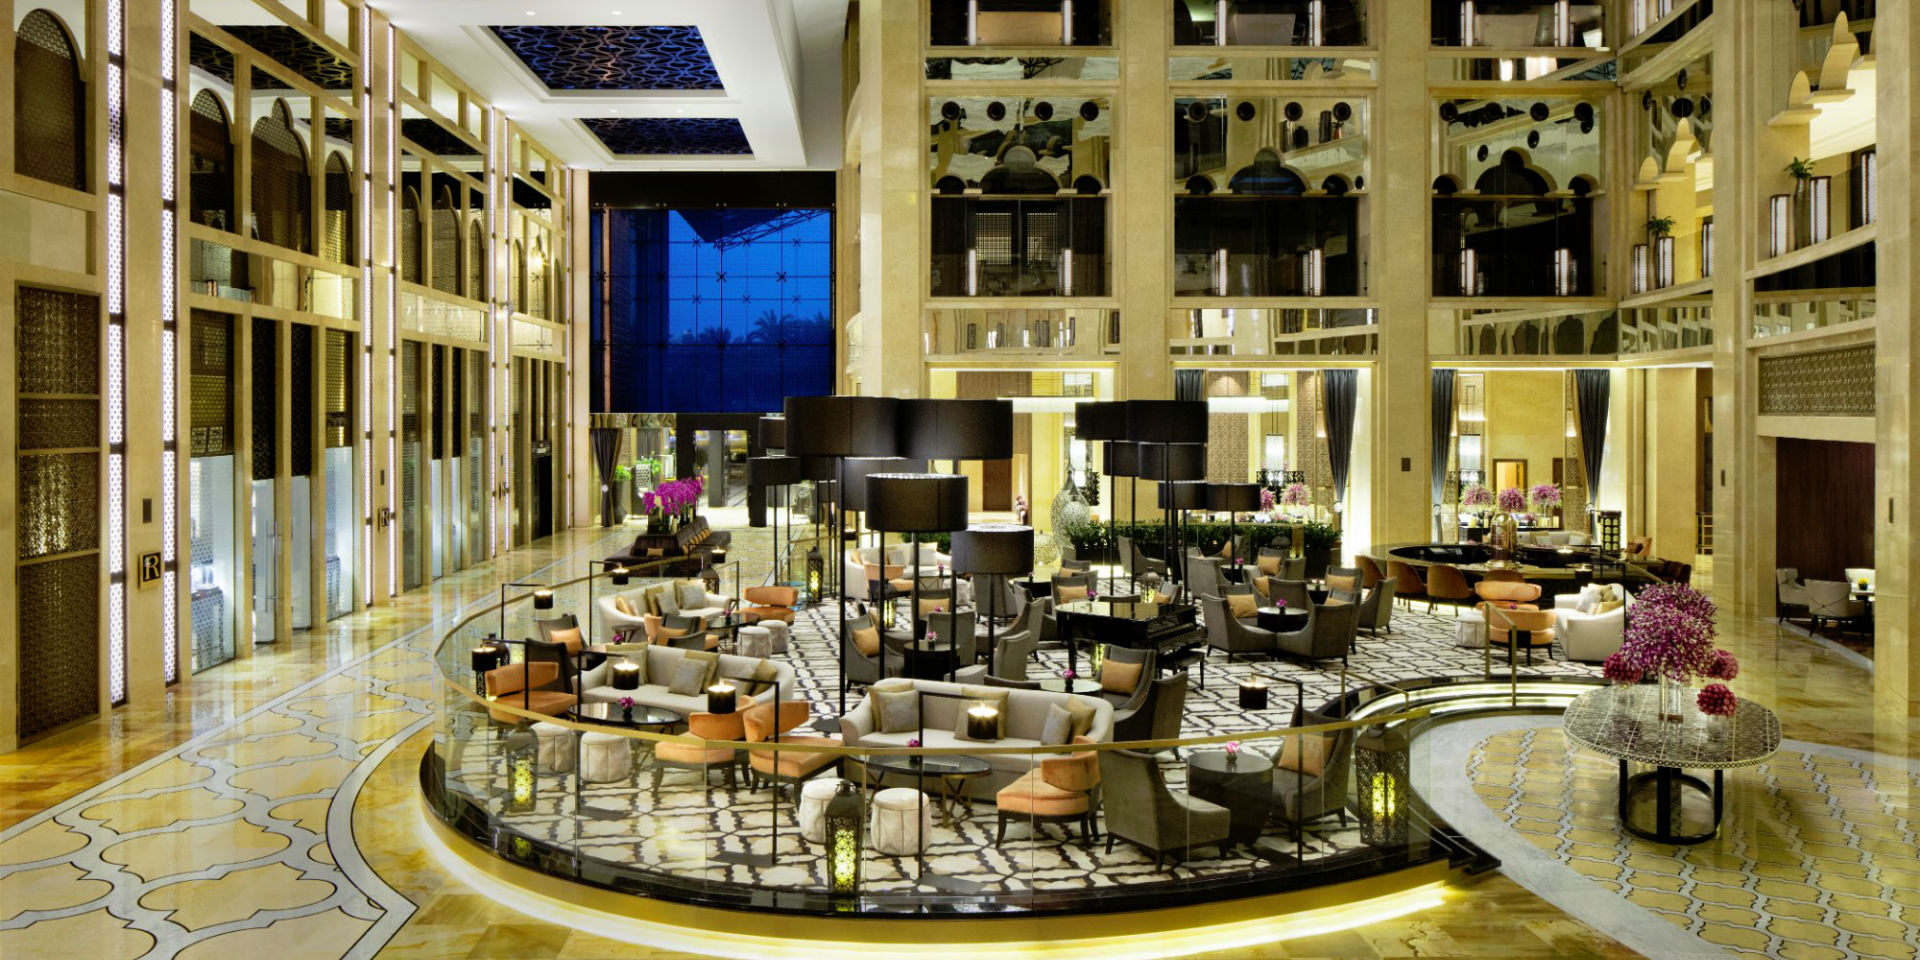 The H Hotel Dubai, a great choice for TOPHOTELPROJECTS World Tour